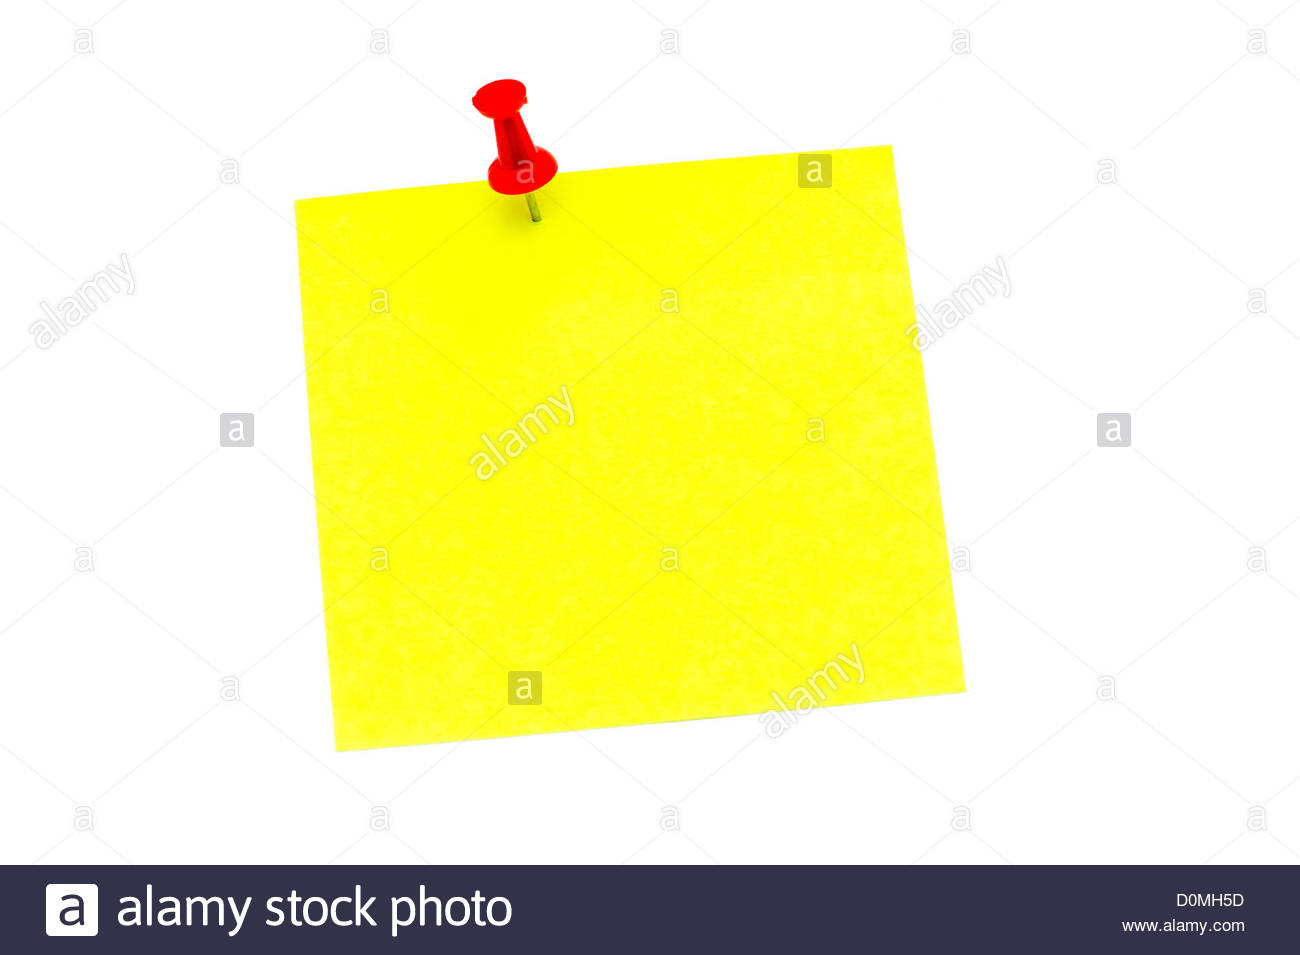 Blank yellow post it note held in place with a red push pin. - Stock Image